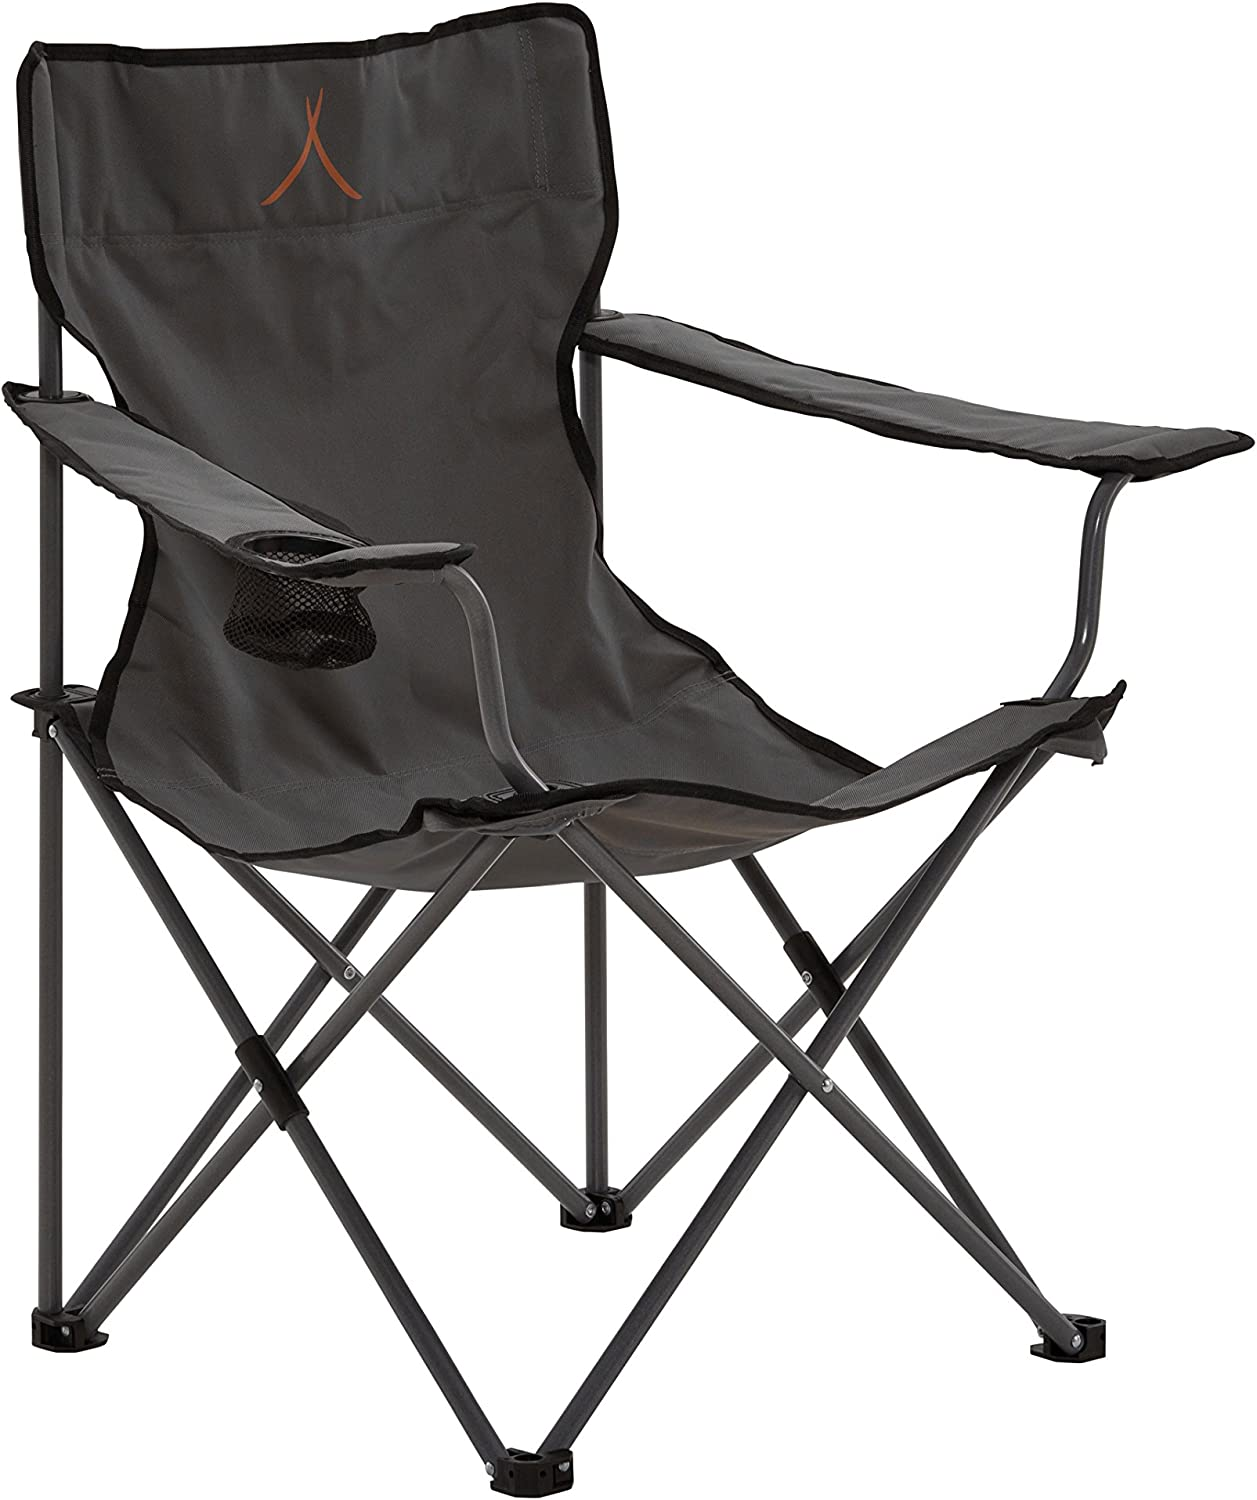 (Grey)  Grand Canyon Director  folding camping chair, steel, different colours